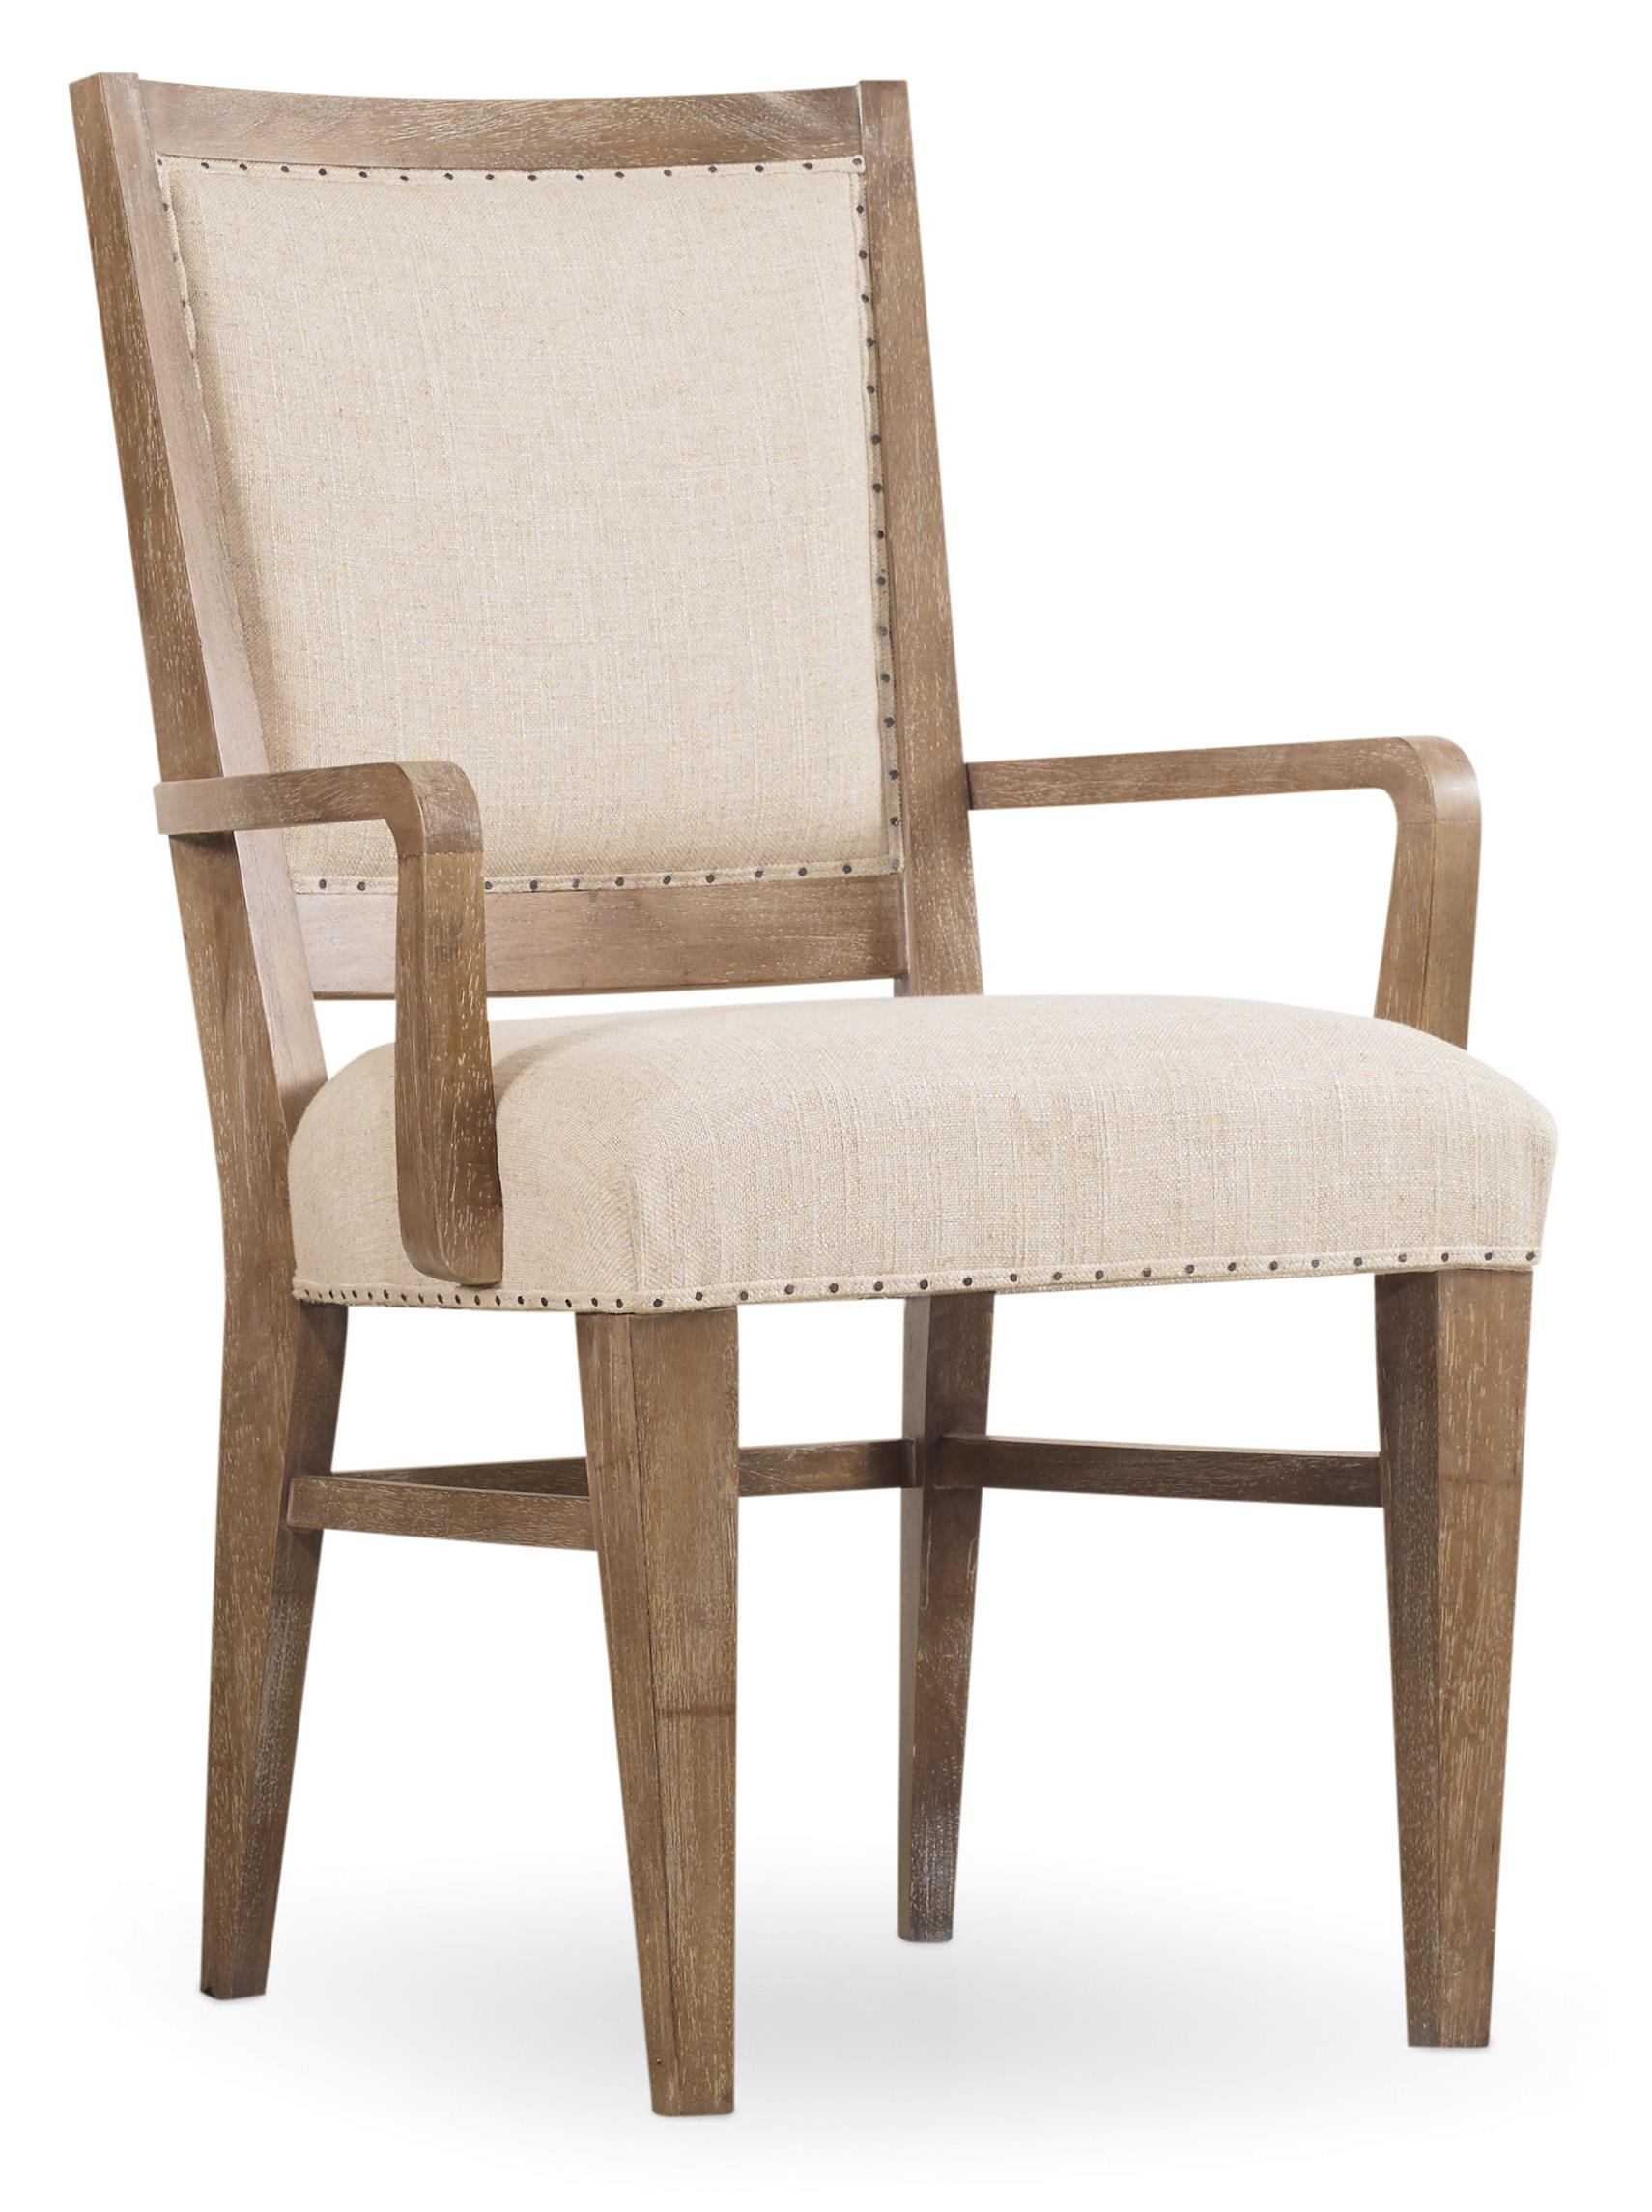 Hooker Furniture Studio 7H Stol Upholstered Arm Chair With